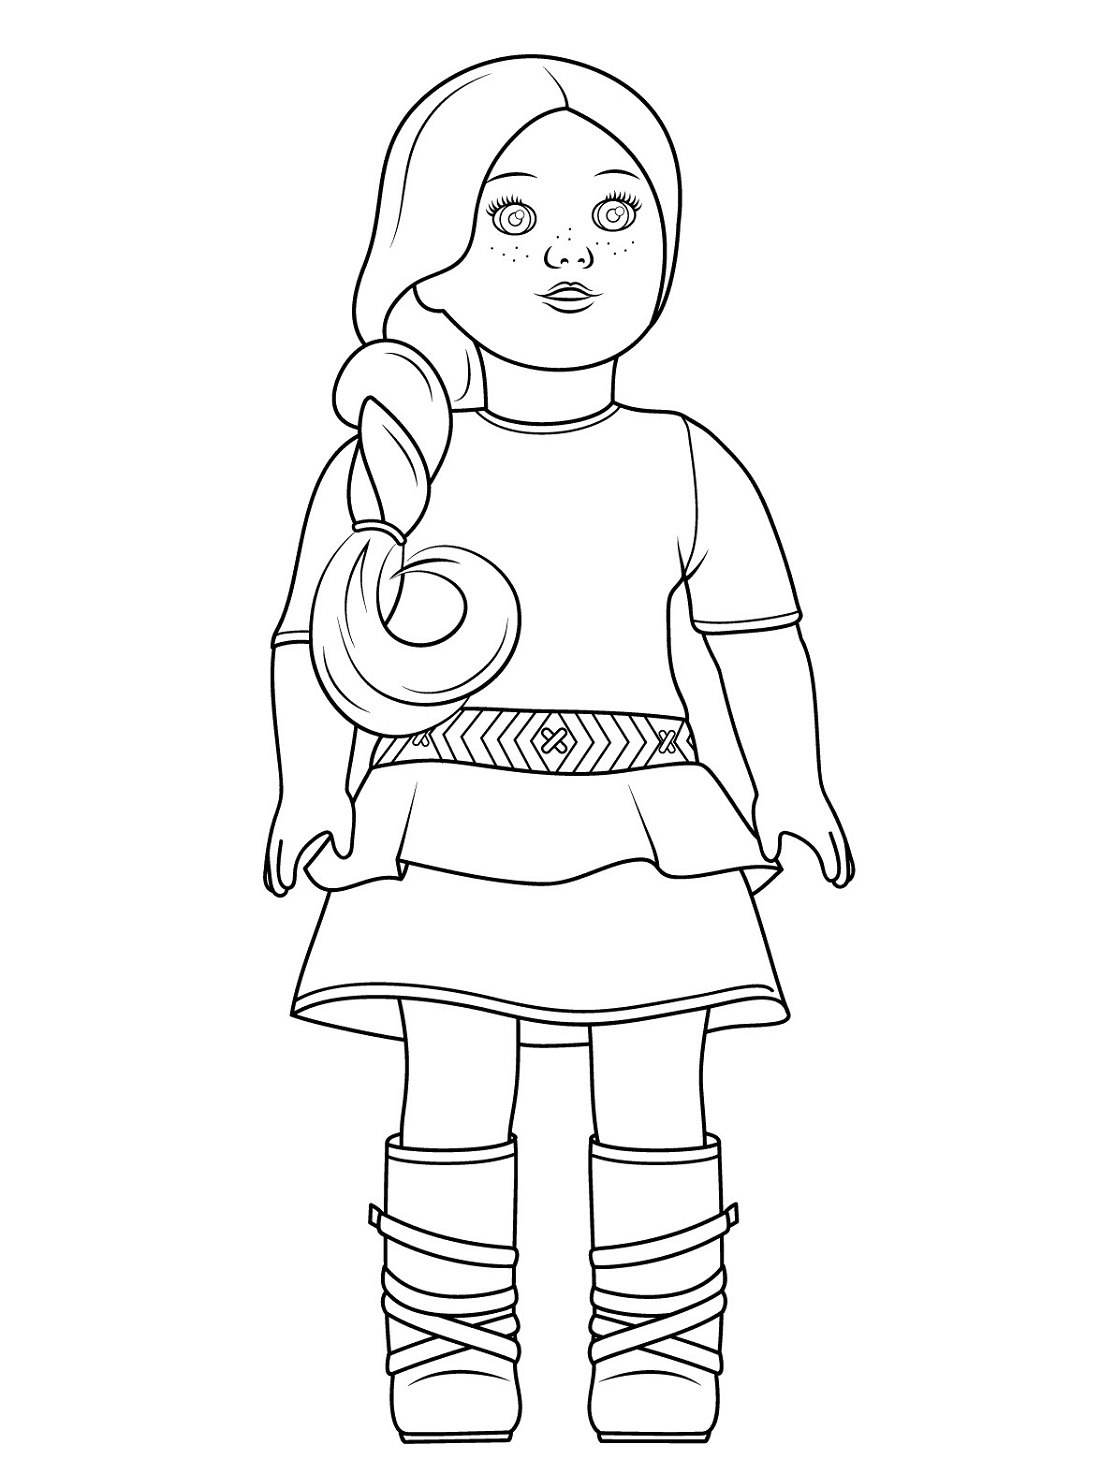 pictures of american girl dolls to color american girl doll julie coloring page free printable pictures dolls color of american girl to